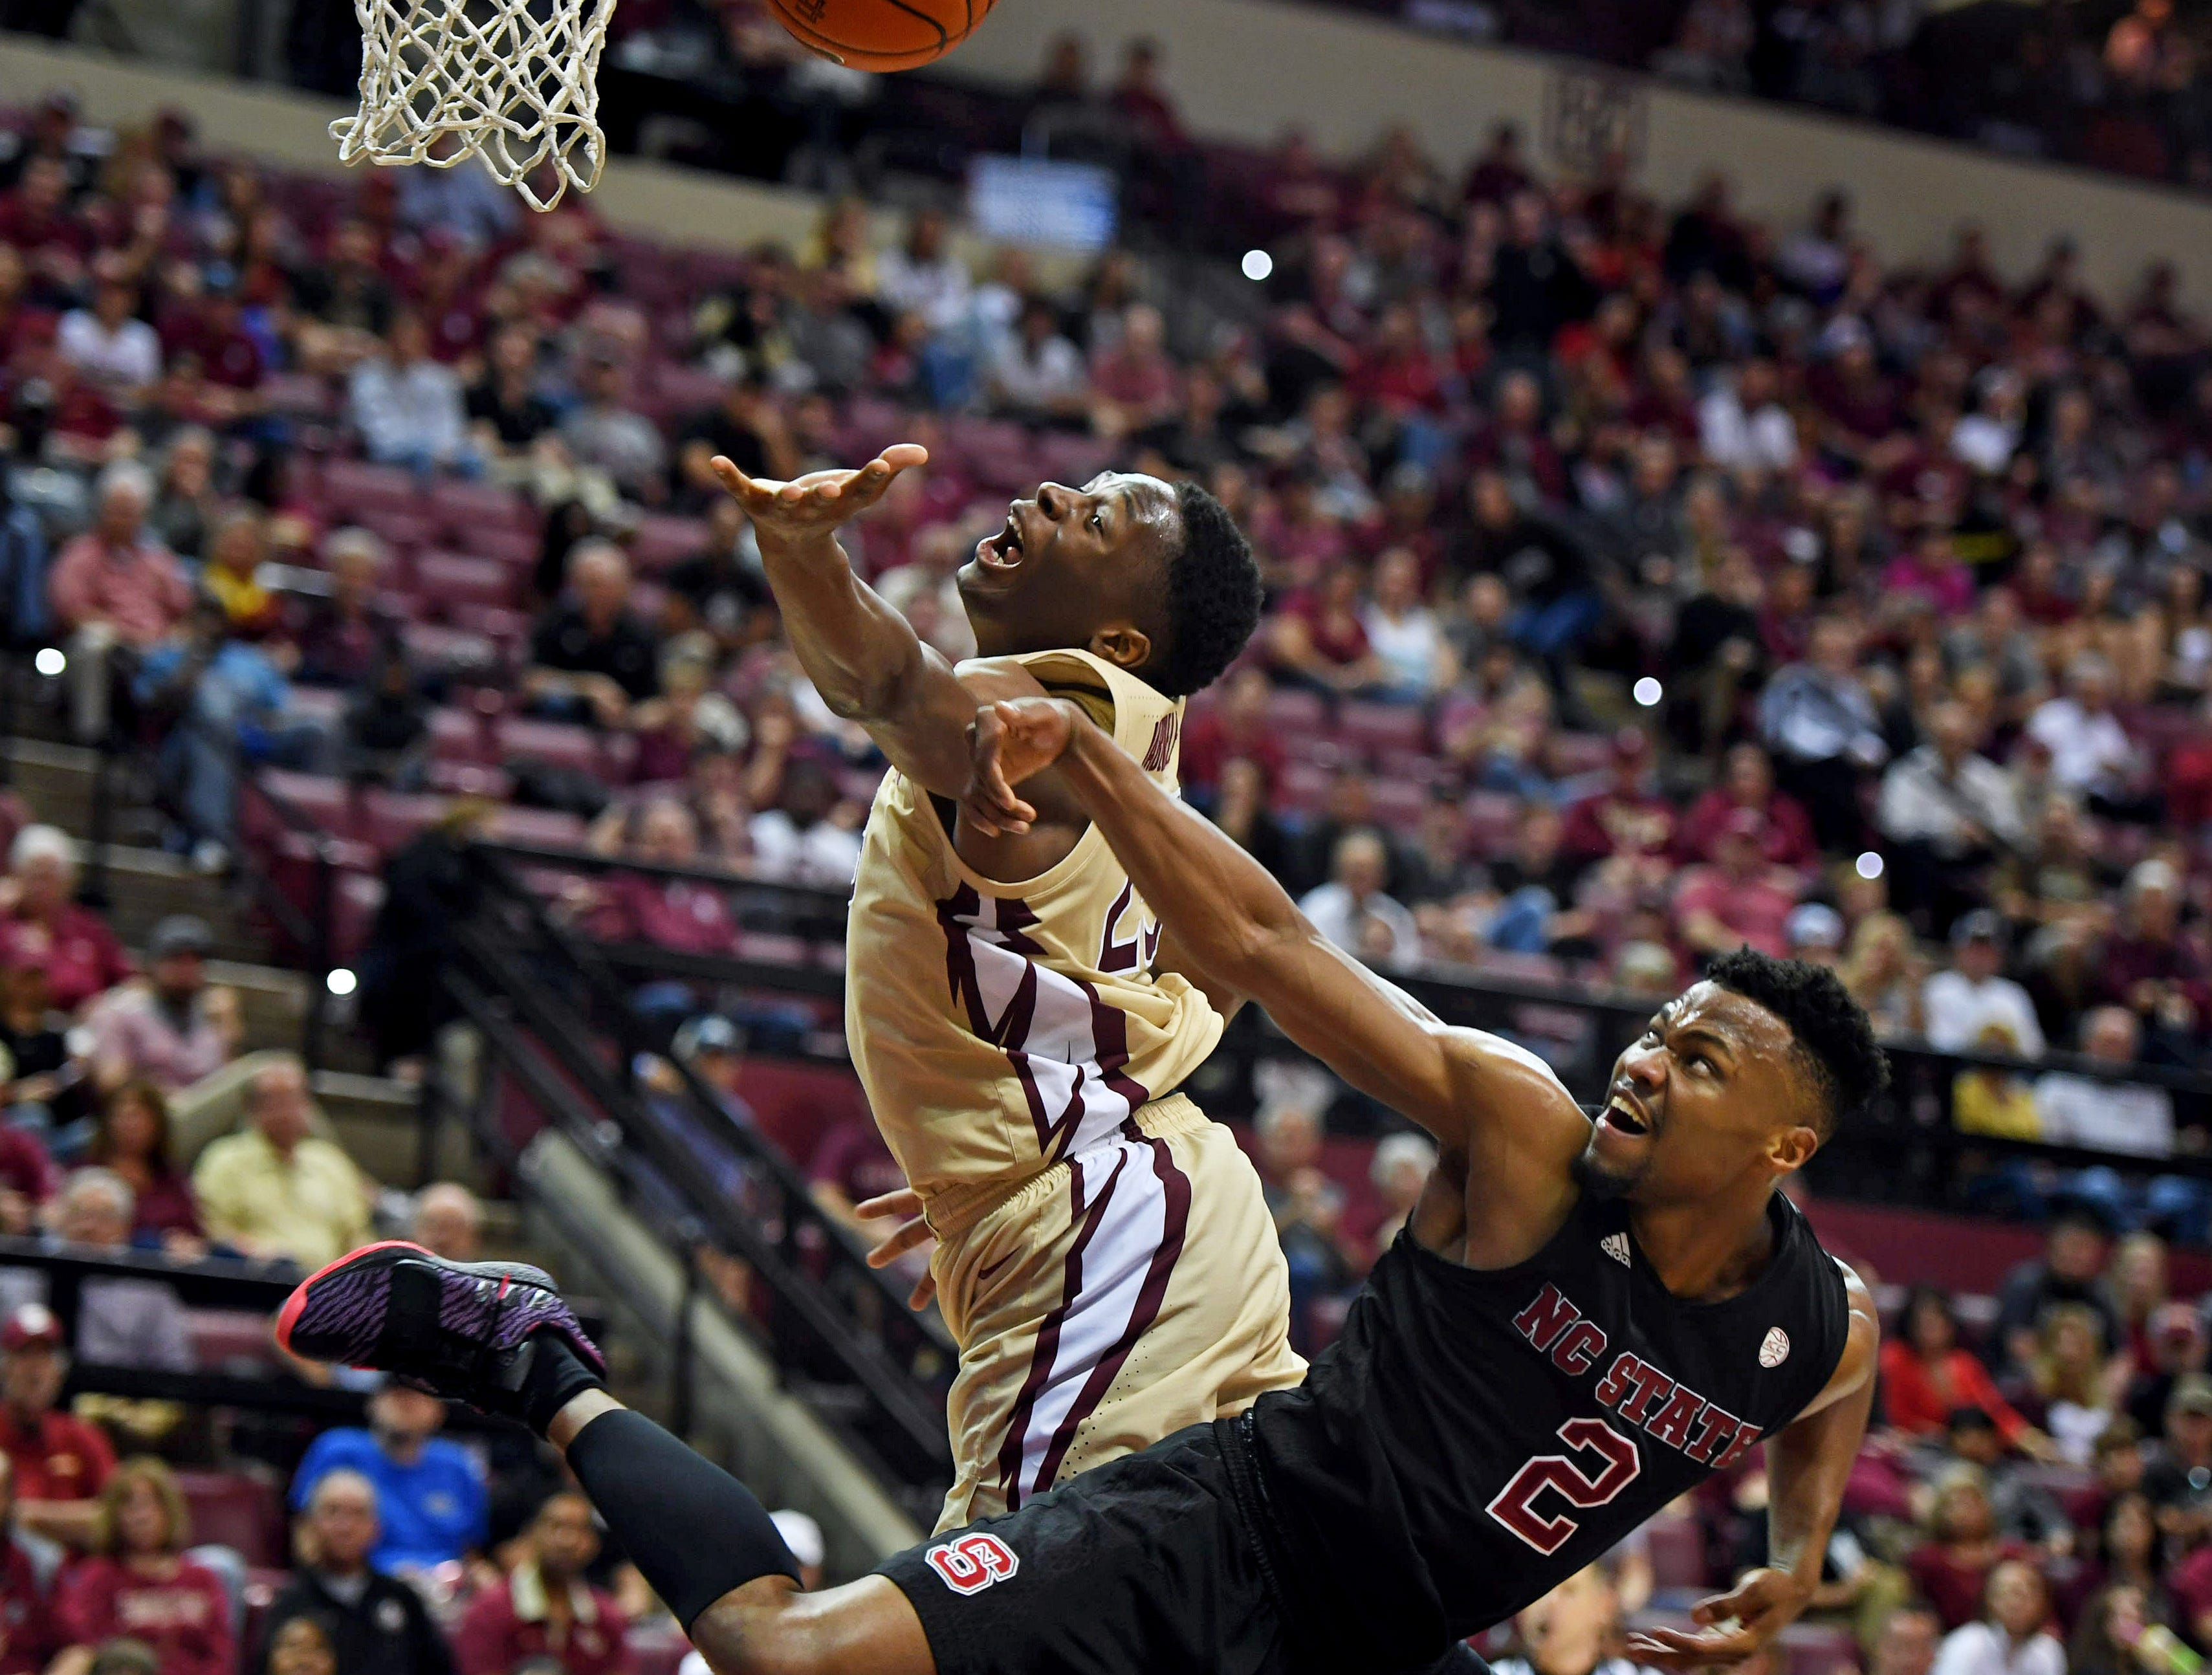 Mar 2, 2019; Tallahassee, FL, USA; Florida State Seminoles forward Mfiondu Kabengele (25) fights for a rebound against North Carolina State Wolfpack guard Torin Dorn (2) during the second half at Donald L. Tucker Center. Mandatory Credit: Melina Myers-USA TODAY Sports